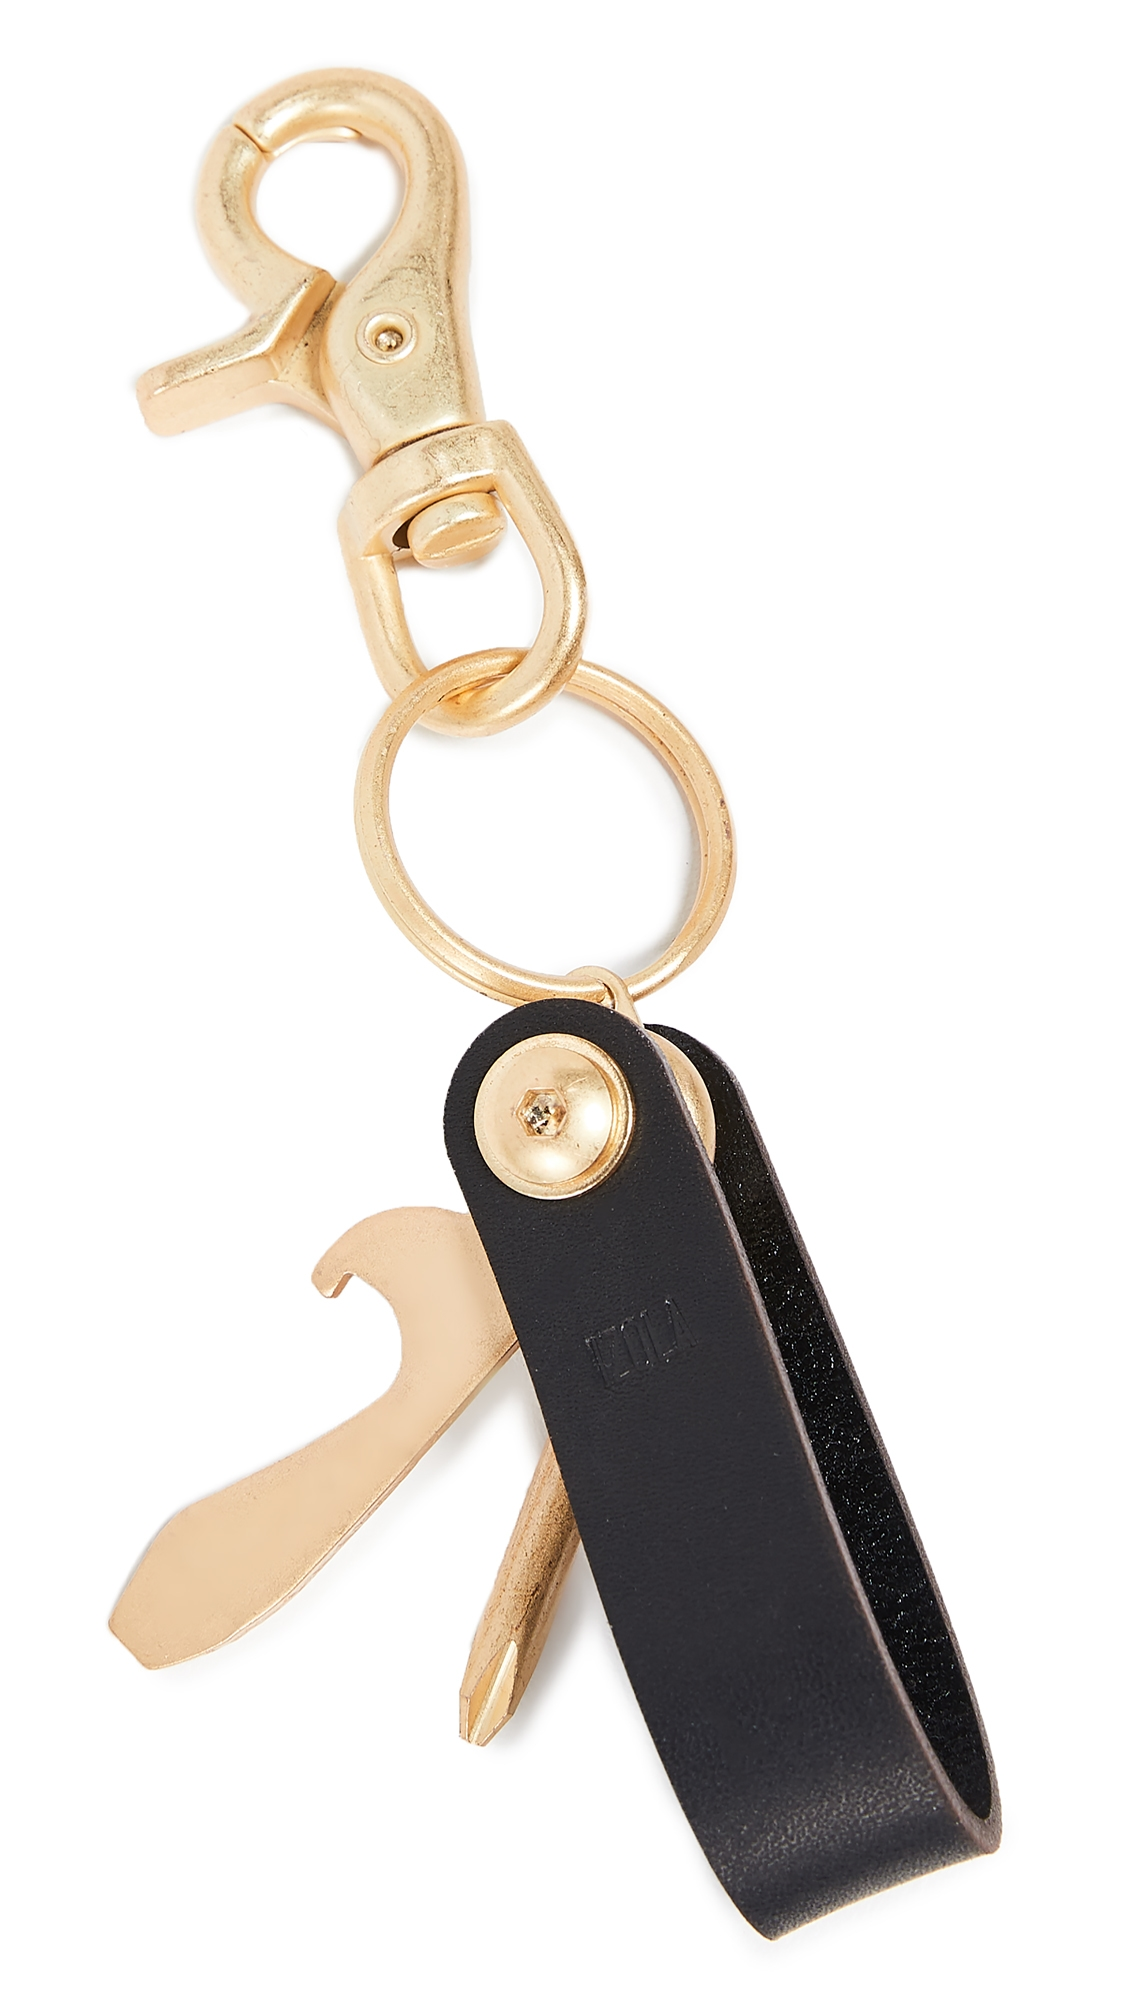 Leather Multi Tool Keychain in Brass/Black from EAST DANE